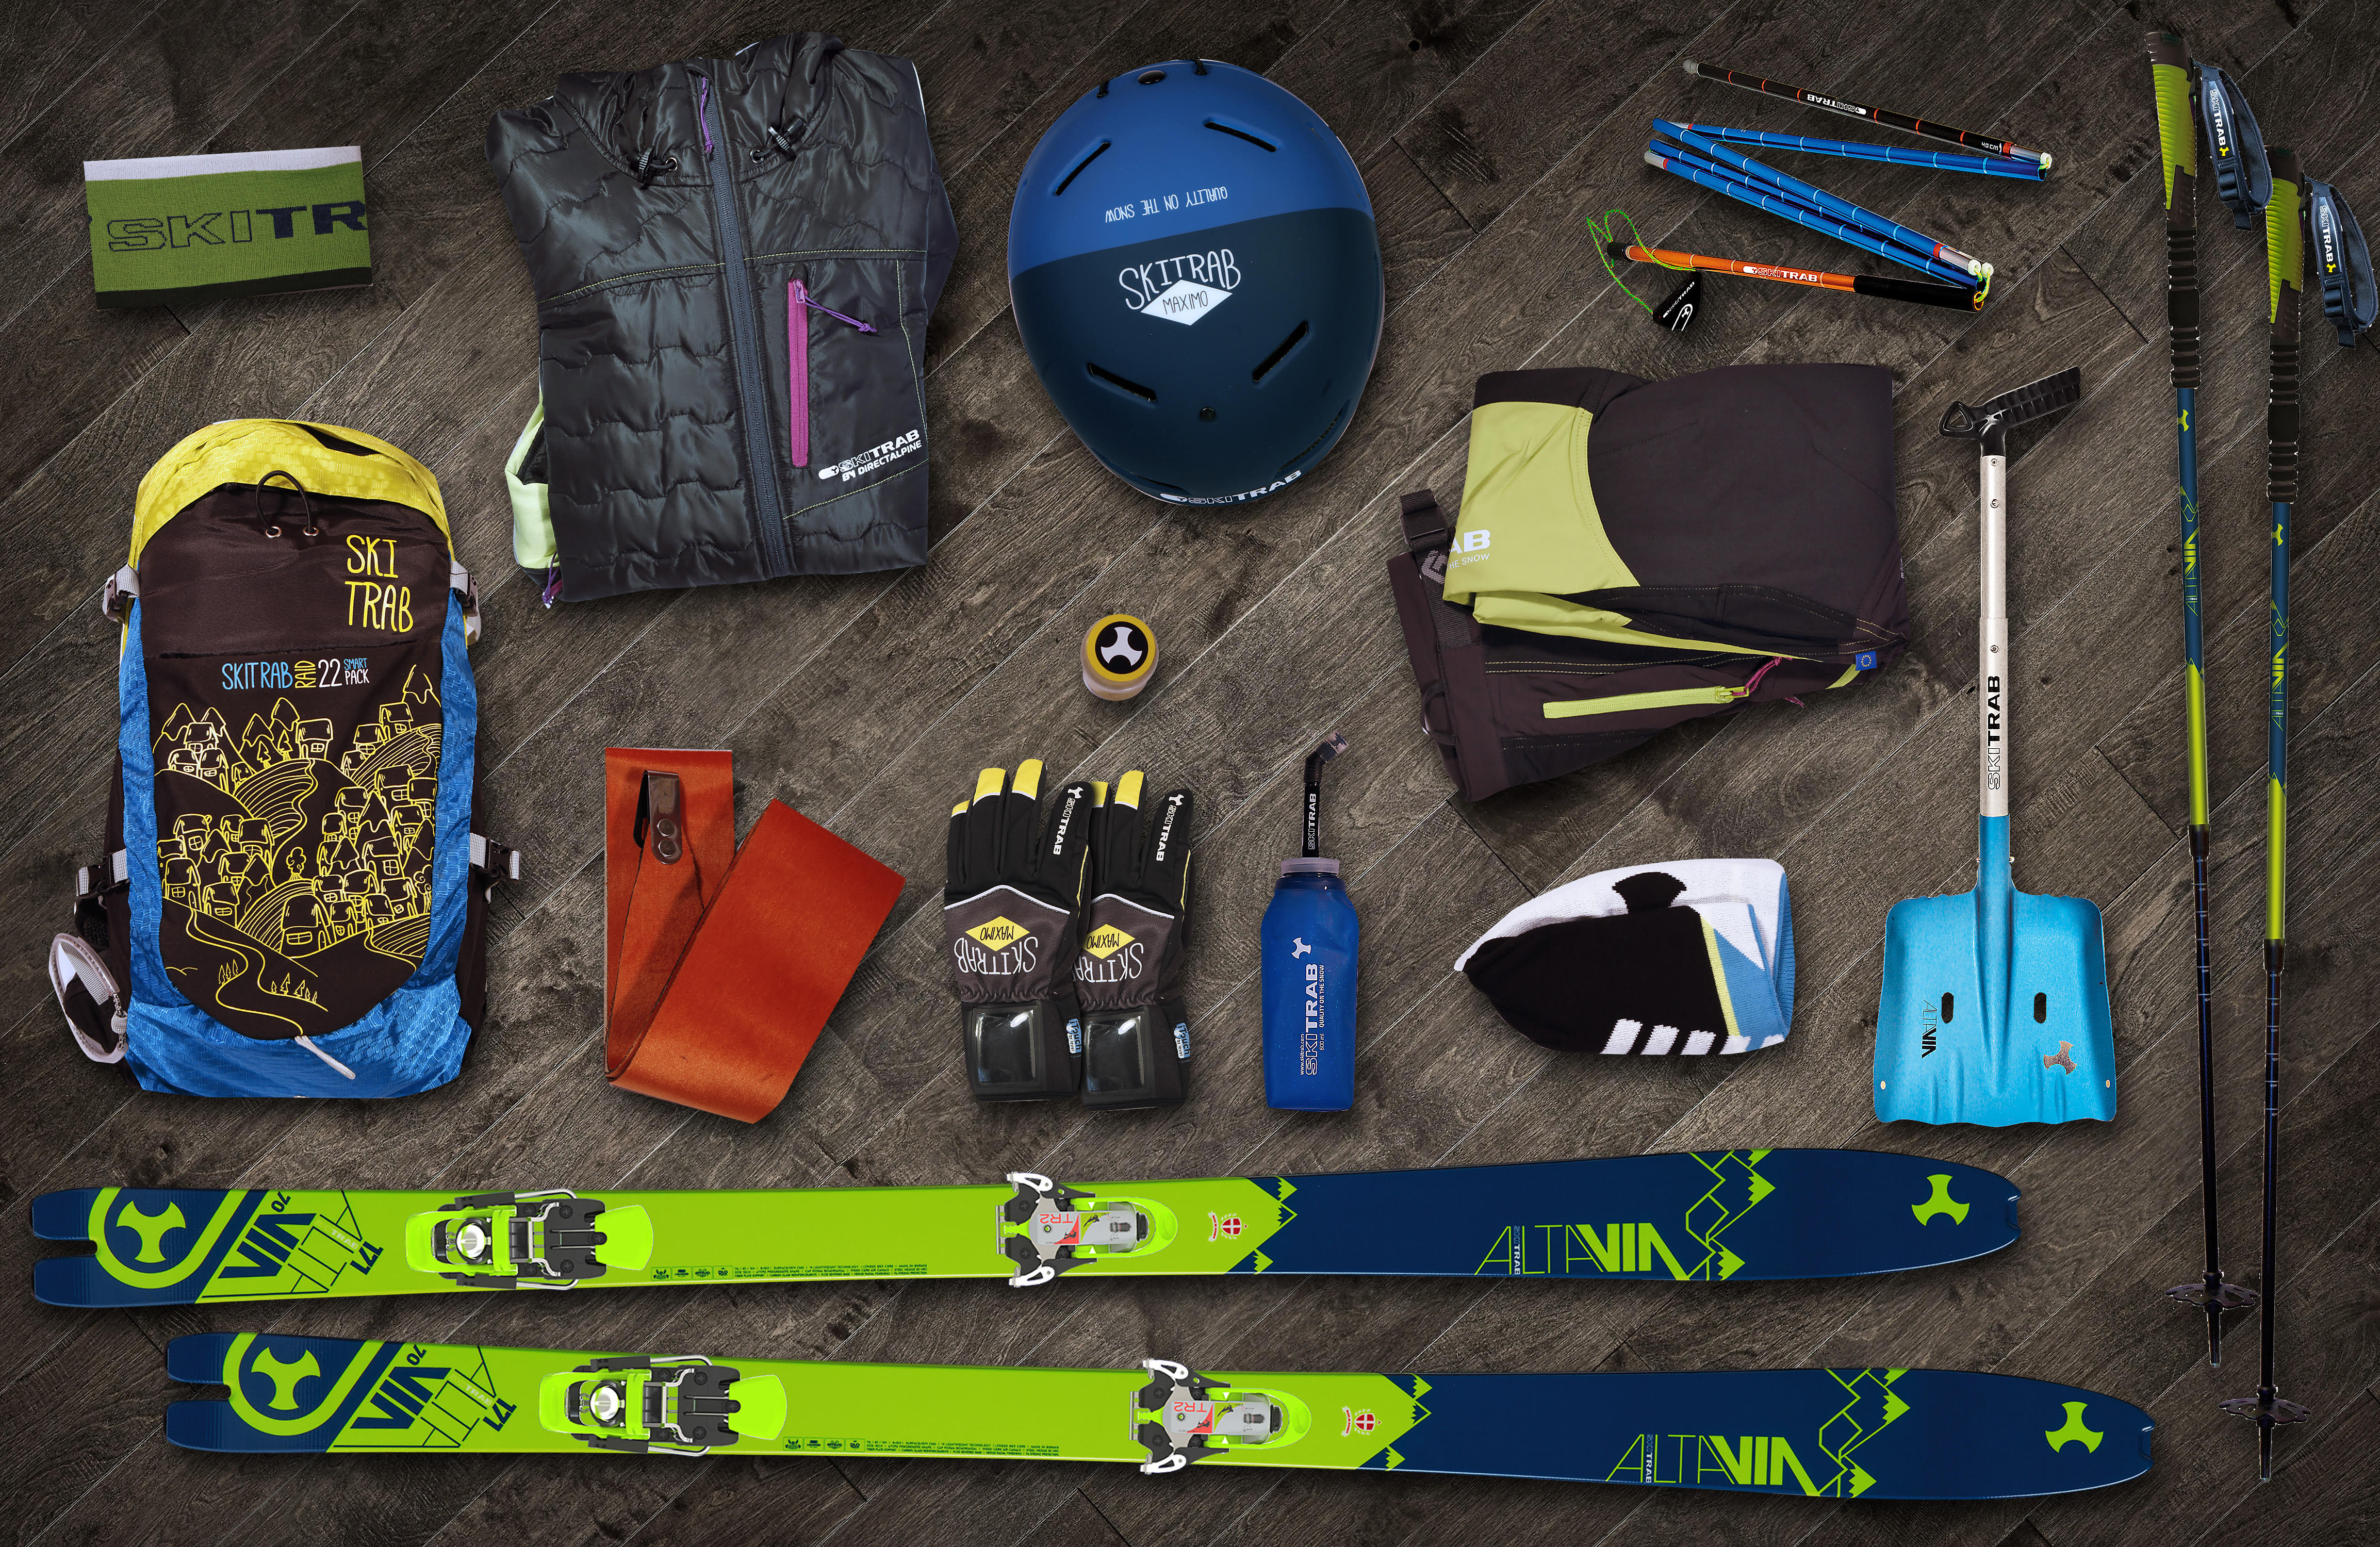 For lightweight, reliable and fun ski touring discover the Adventure line: Made in Ski Trab!